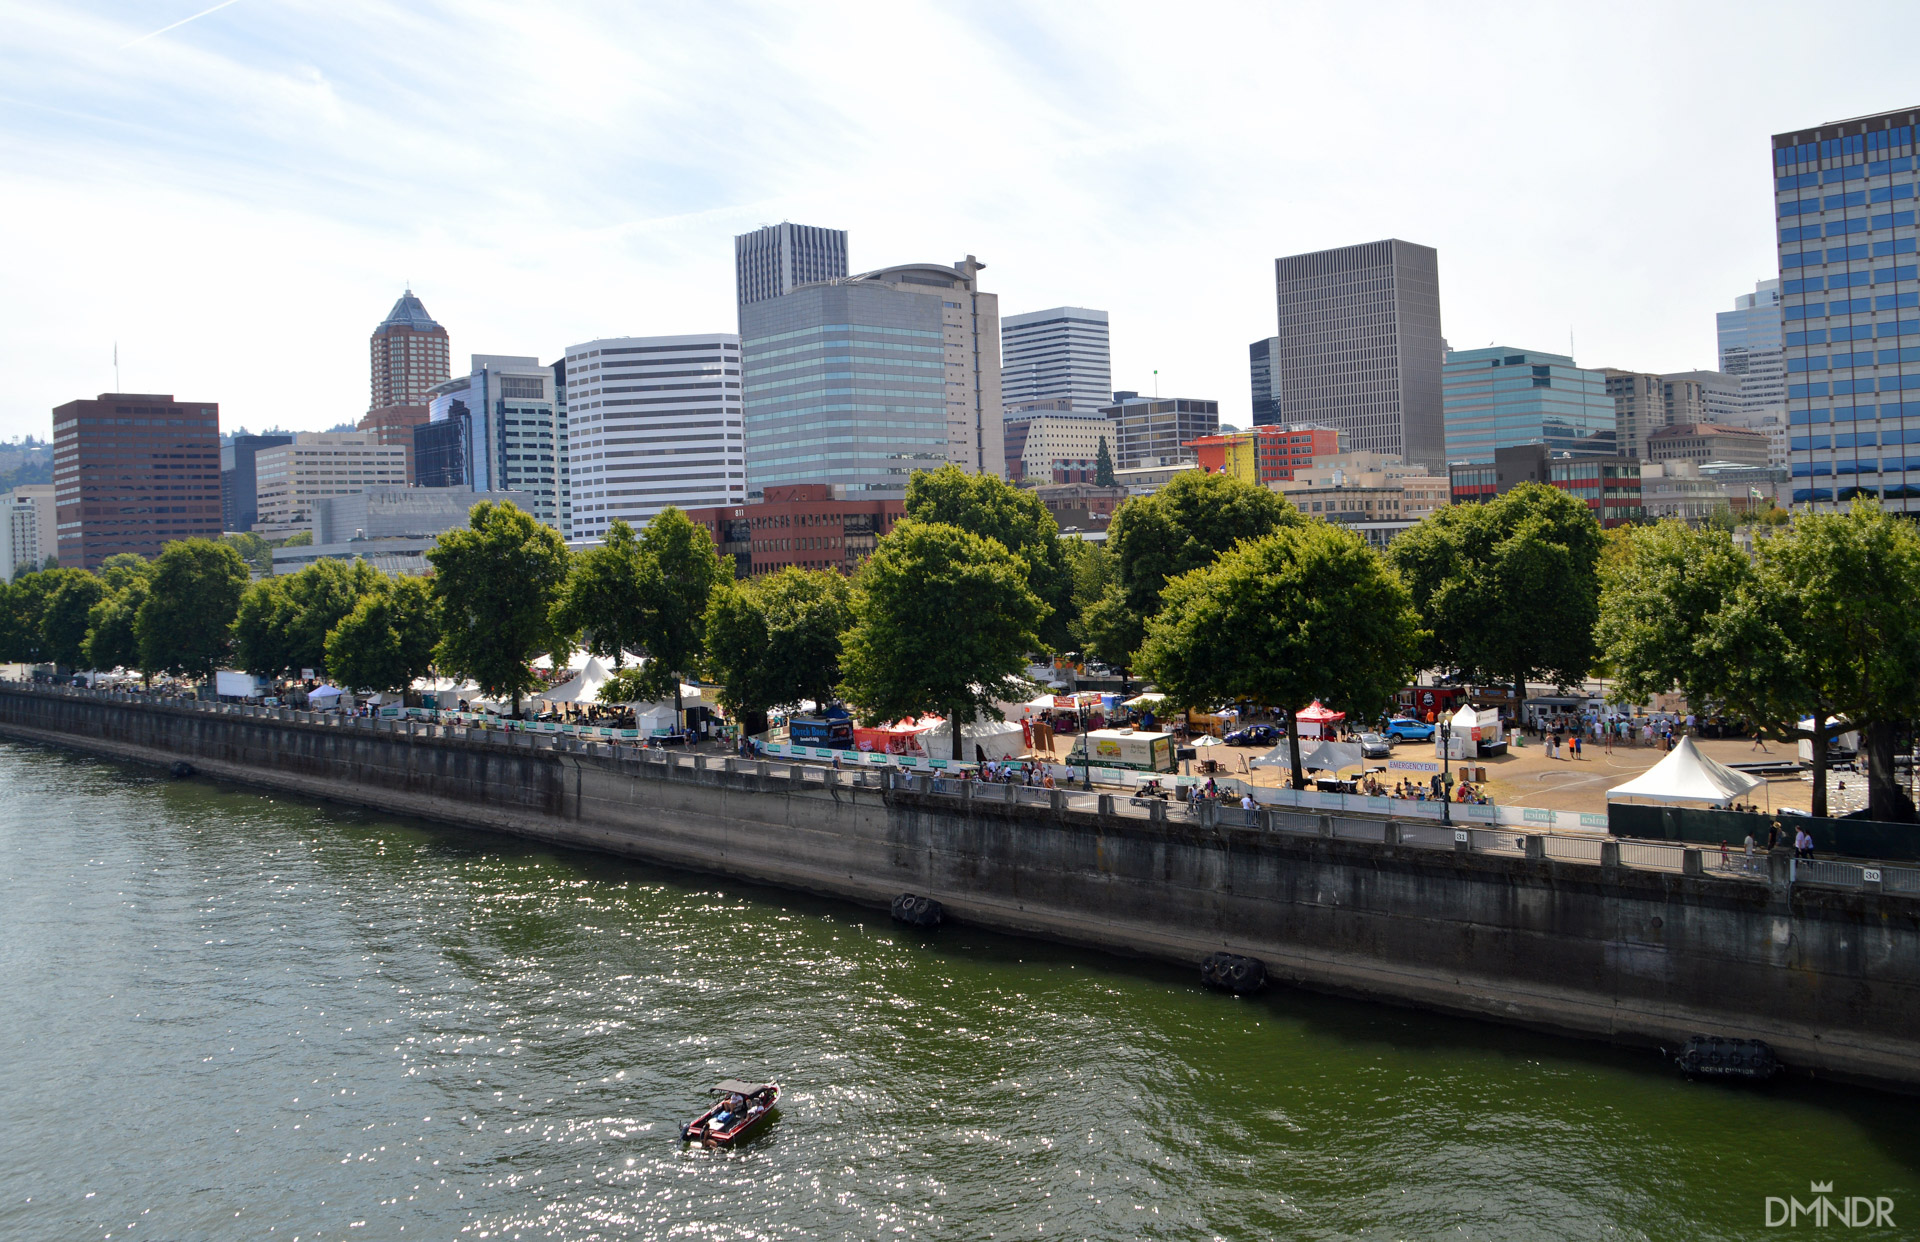 The Bite of Oregon from the Morrison Bridge on the Willamette River in downtown Portland